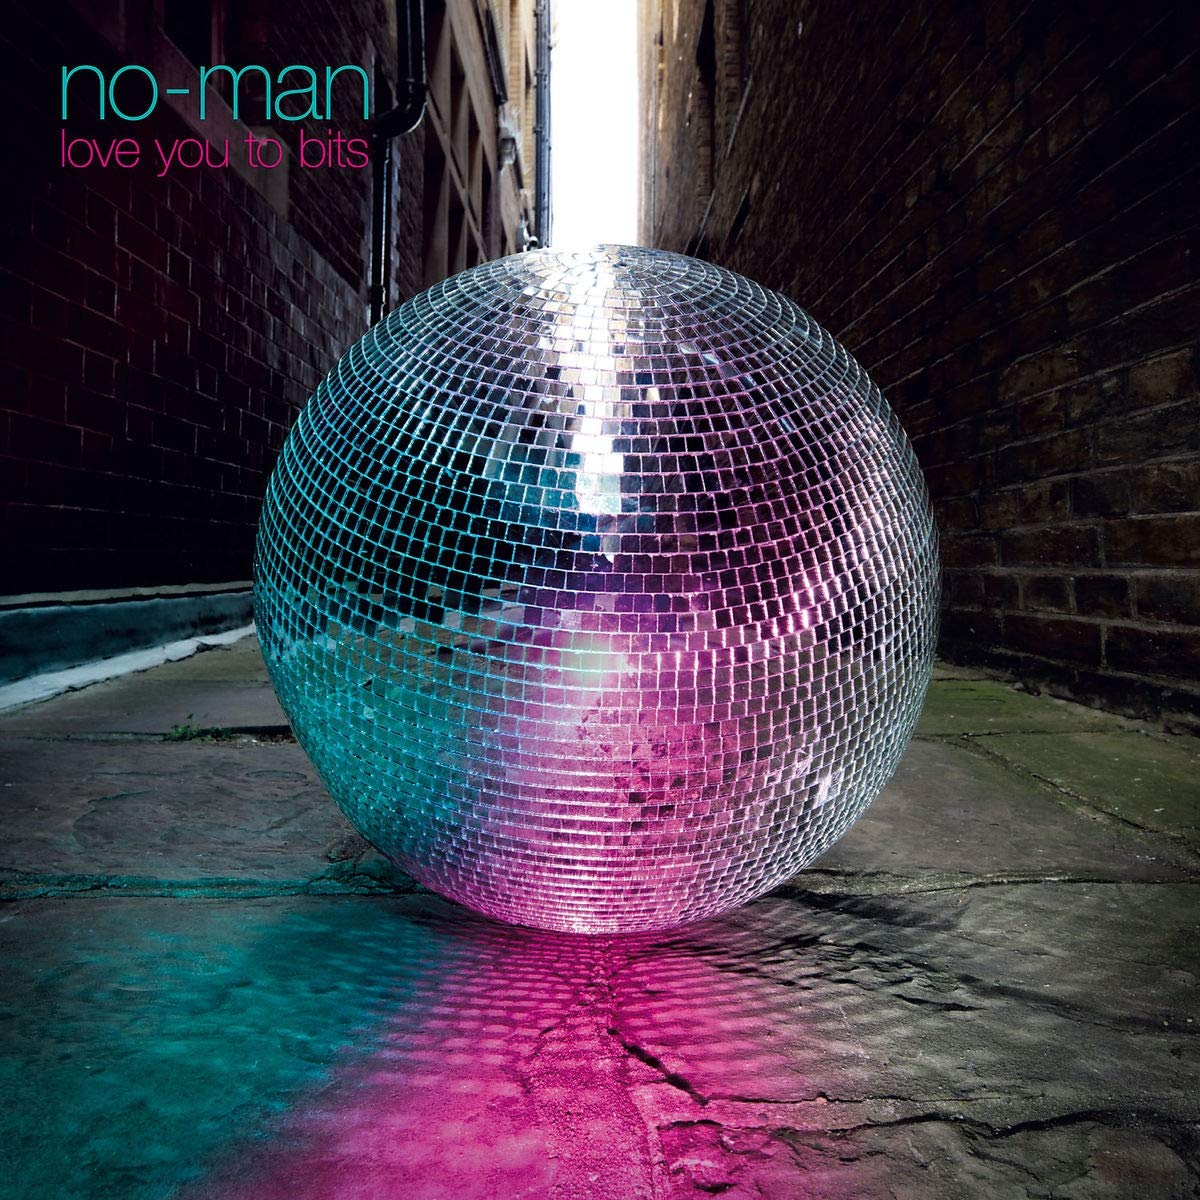 Electro News @ – No-man – Love You To Bits